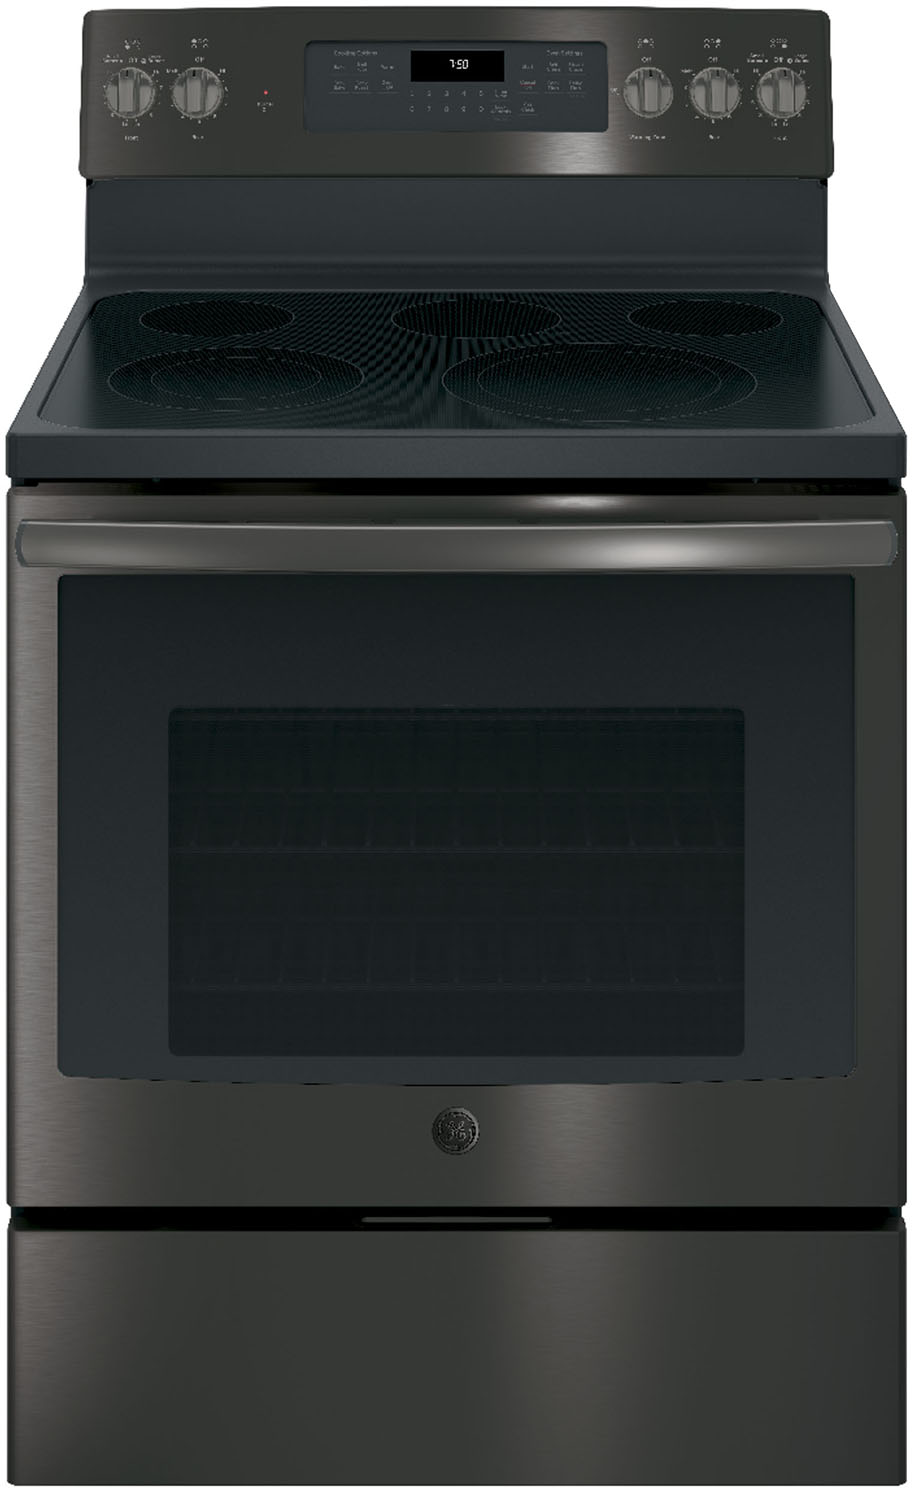 GE Profile 30 Black Stainless Steel Electric Convection Range